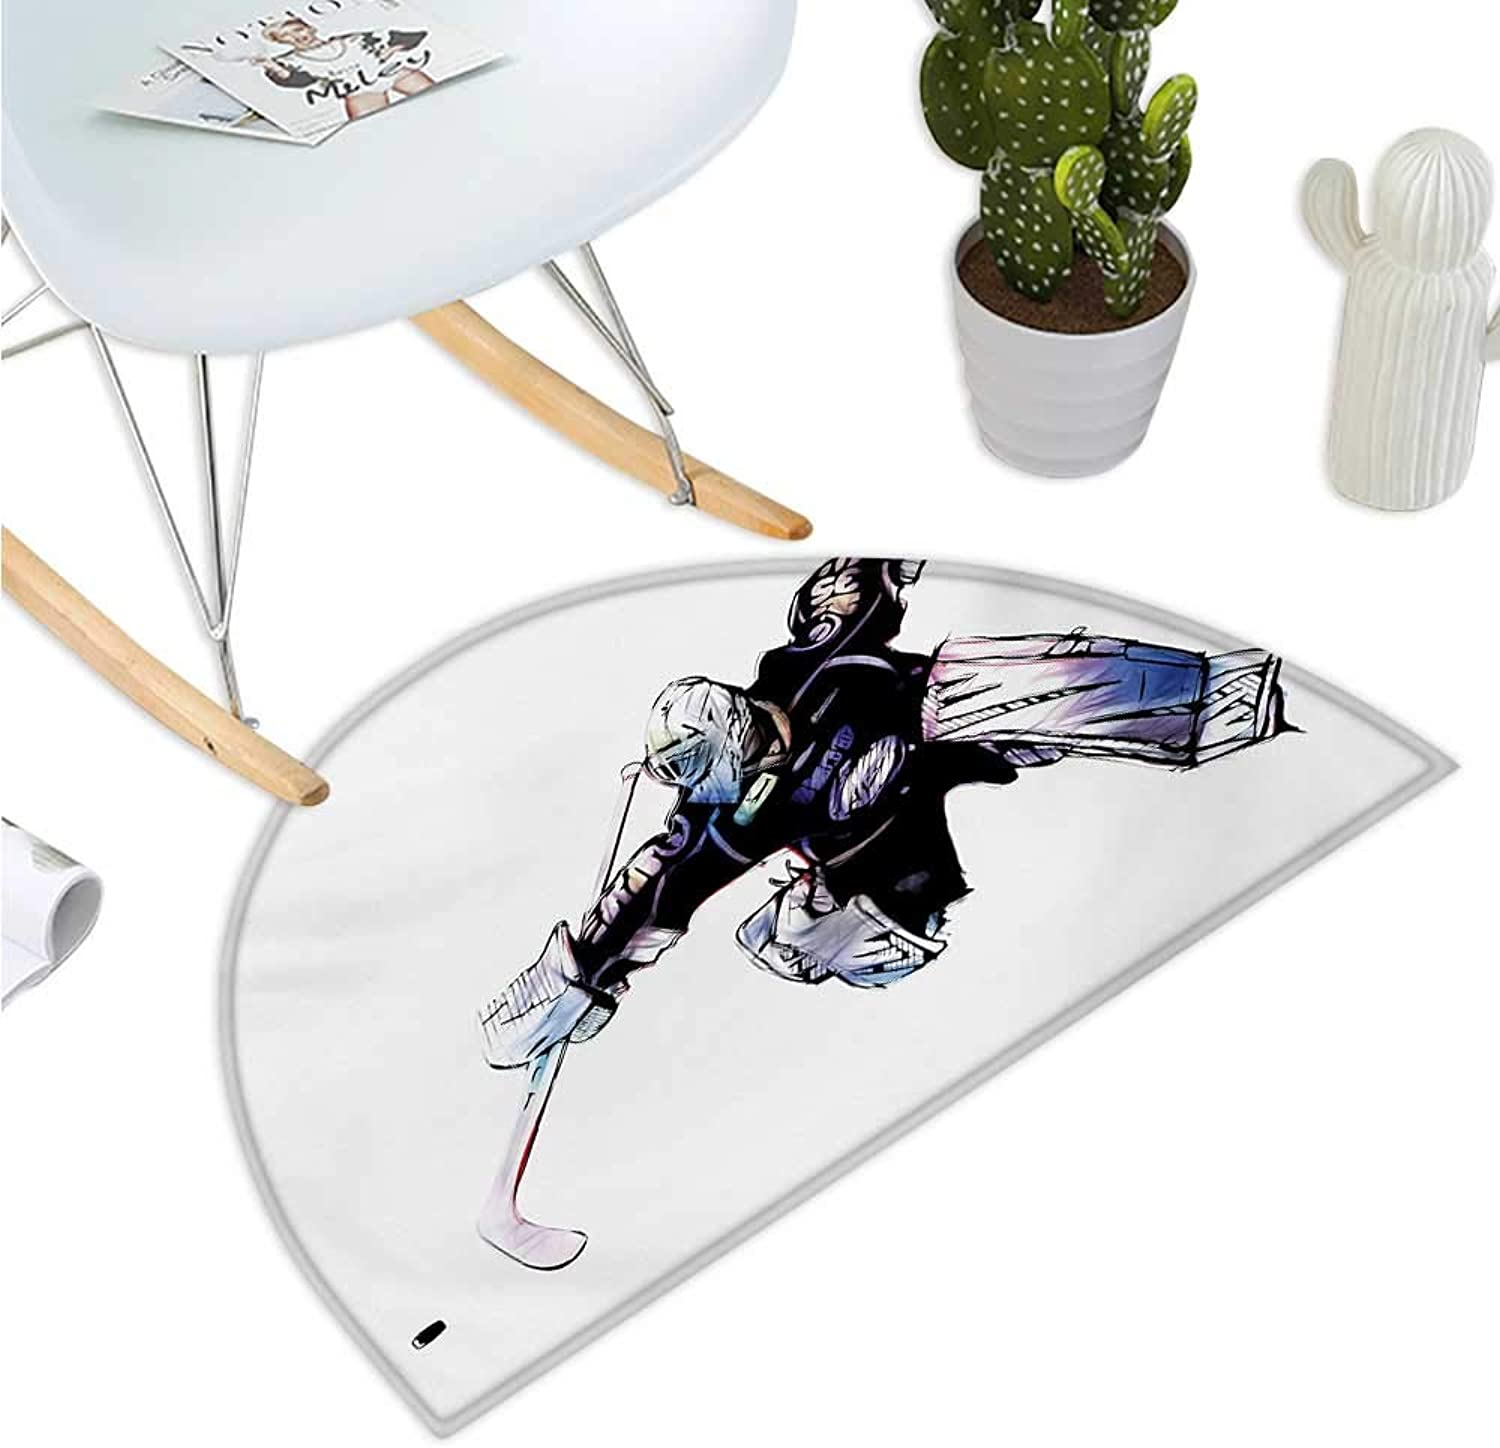 Hockey Semicircle Doormat Goalkeeper in Hand Drawn Style with Predective Gear in a Competitive Game Entry Door Mat H 43.3  xD 64.9  Purple Black White